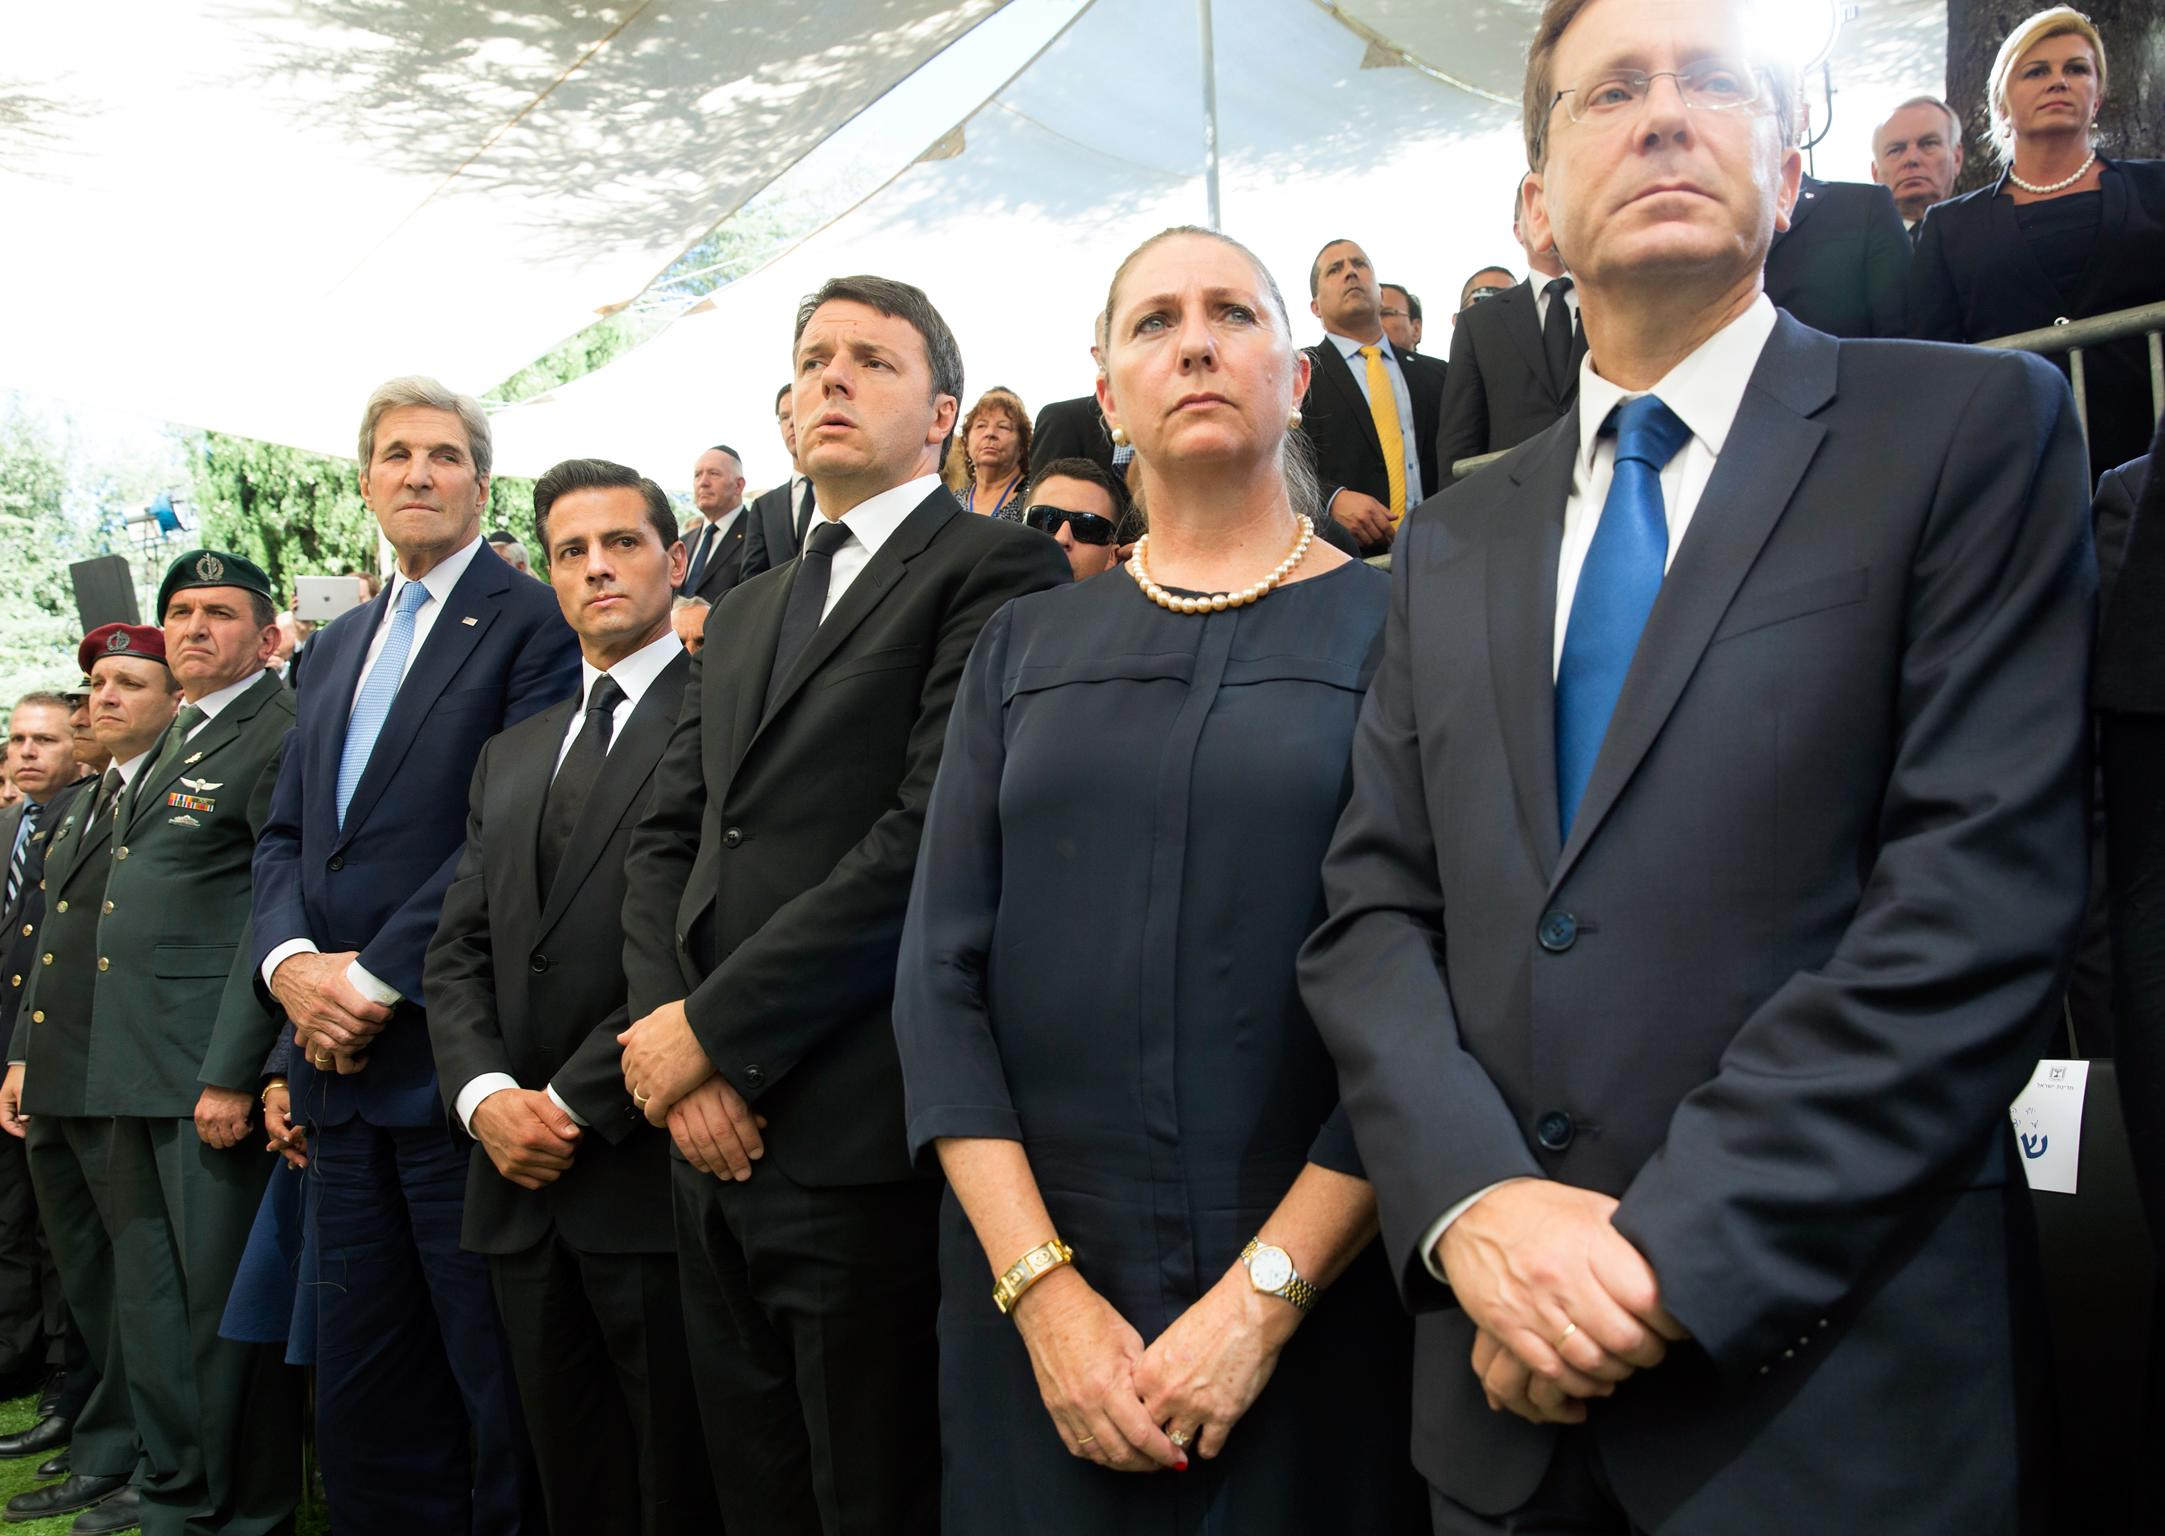 Members of the Jewish community in Mexico Salomón Achar and Rafael Zaga Kalach accompanied the president as special guests.